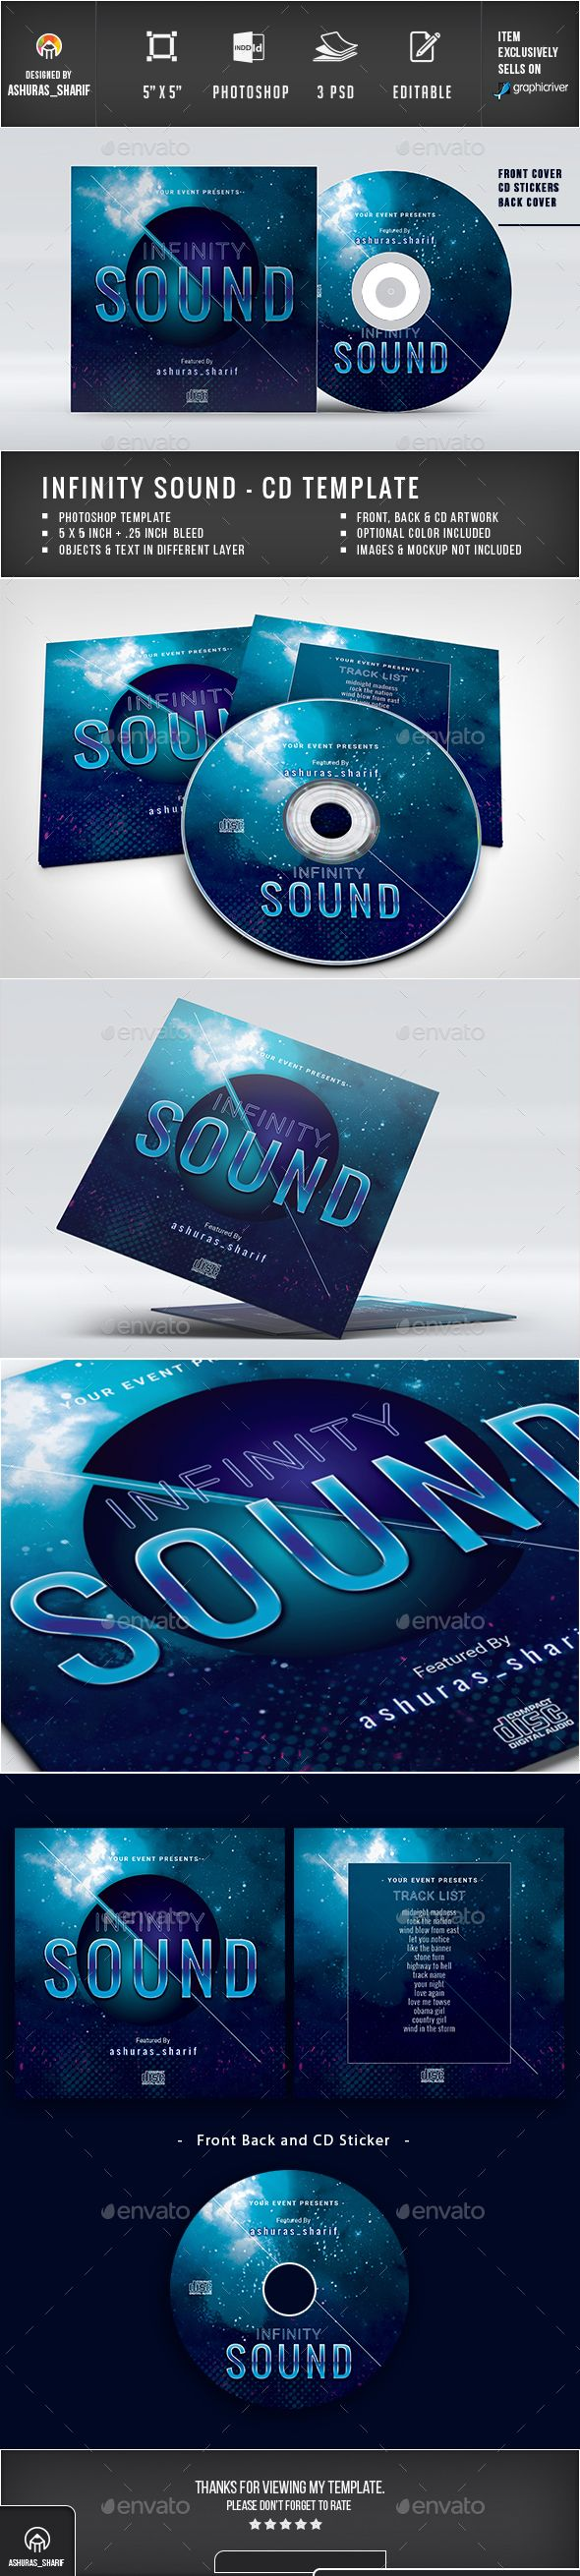 CD Cover   Cd cover, Print templates and Cd cover template